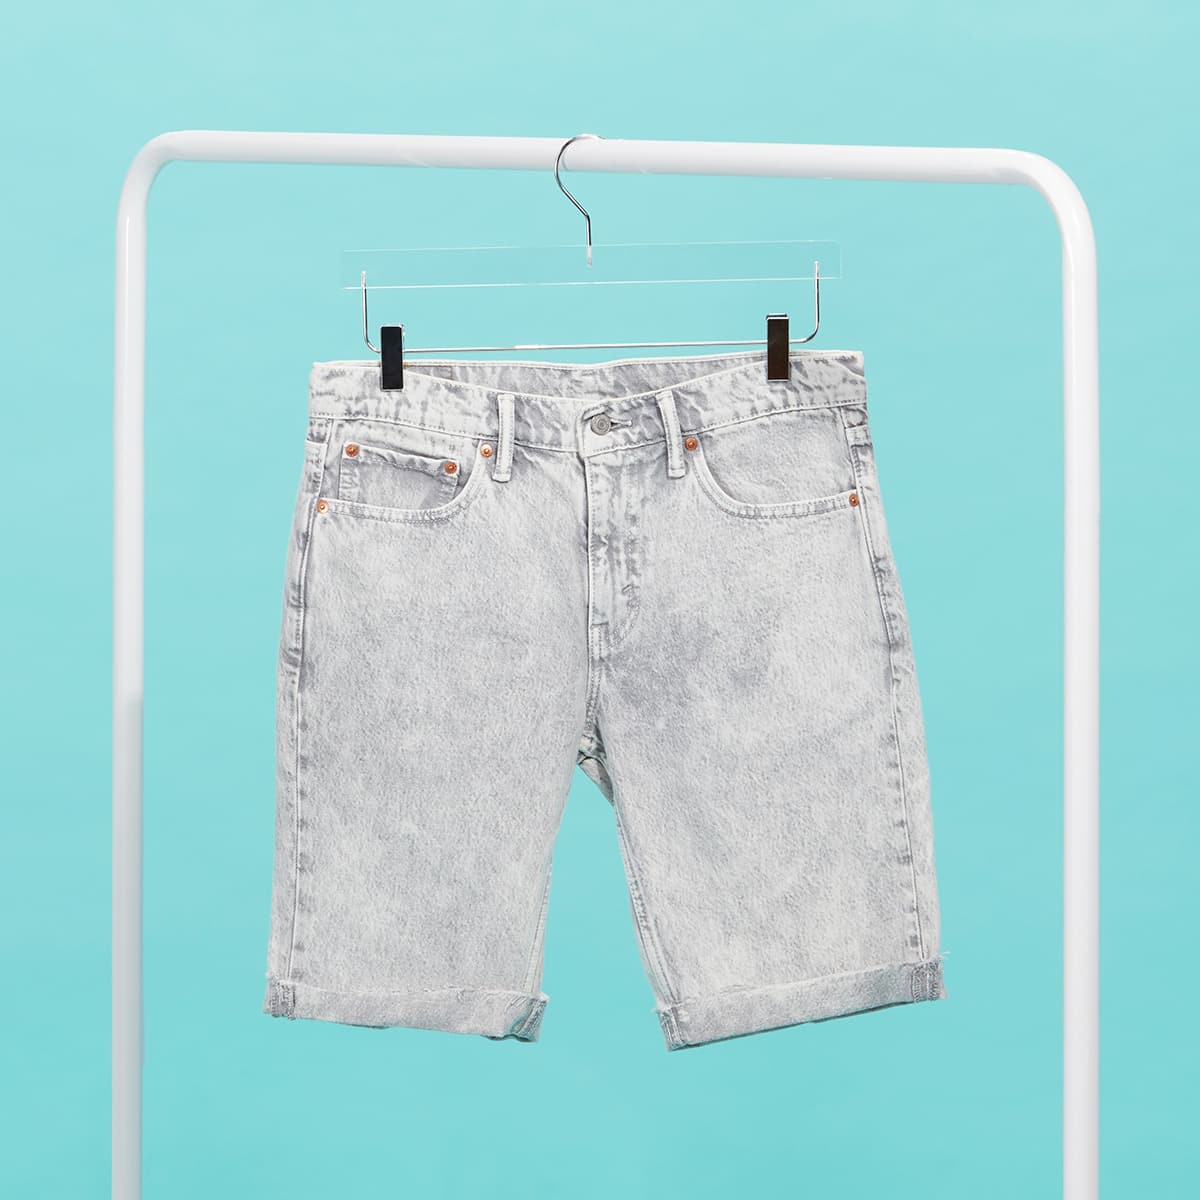 Washed denim shorts for men